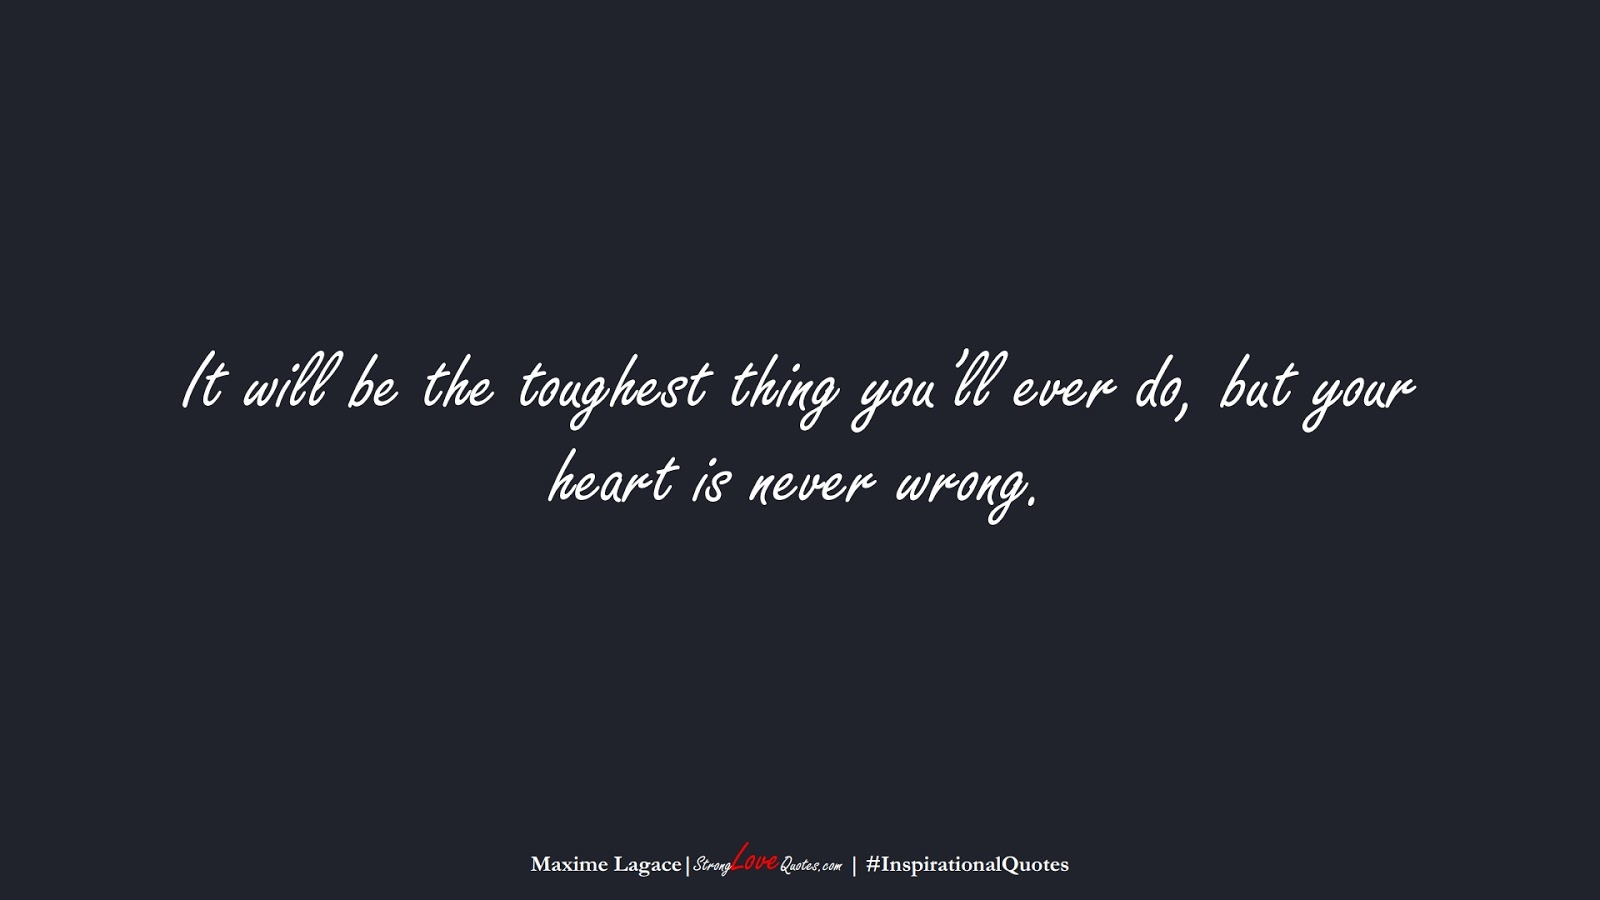 It will be the toughest thing you'll ever do, but your heart is never wrong. (Maxime Lagace);  #InspirationalQuotes